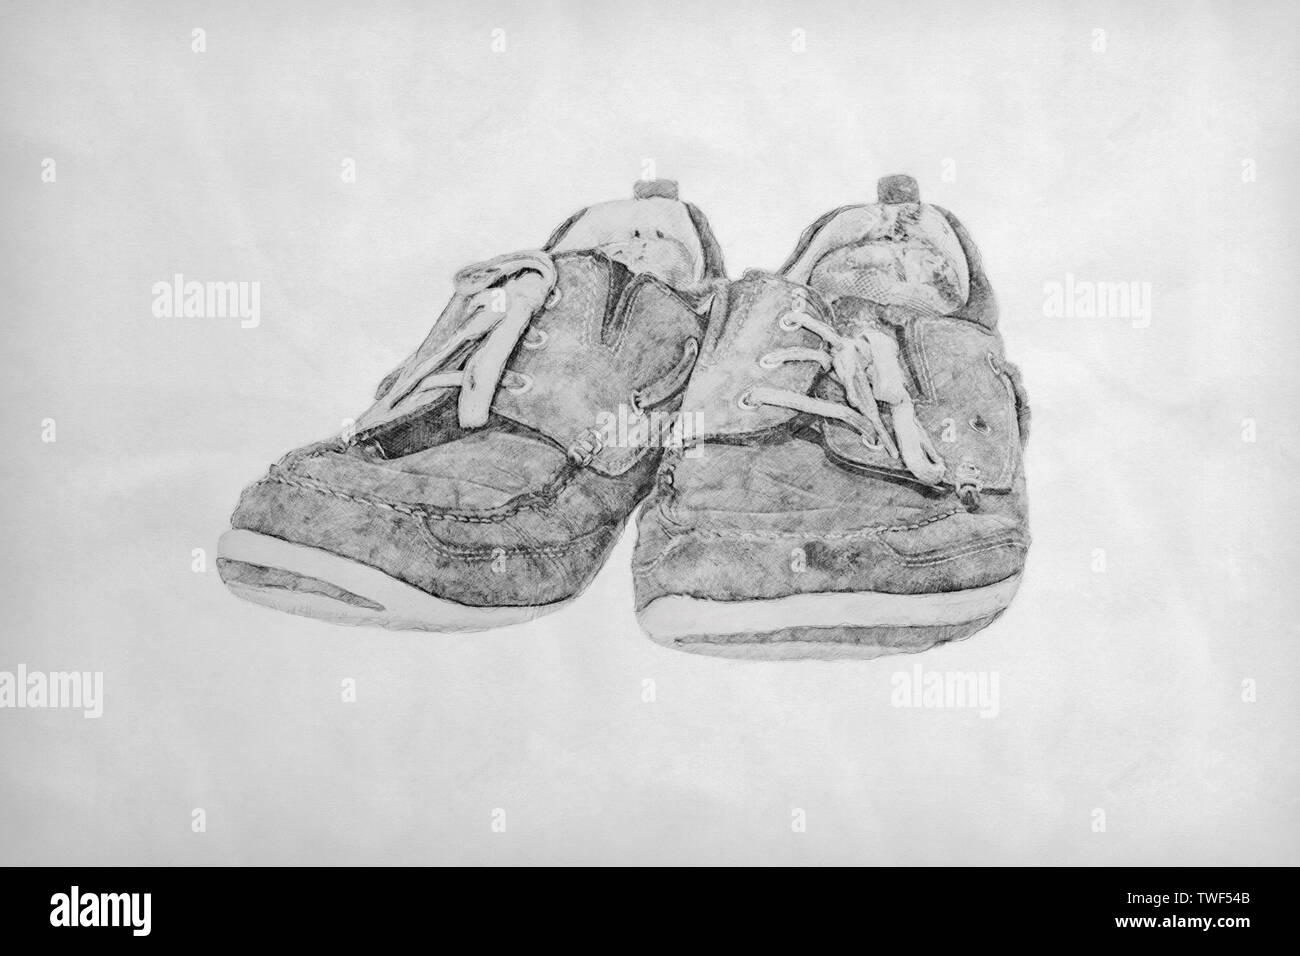 Pencil drawing of a pair of old worn-out lace-up shoes Stock Photo